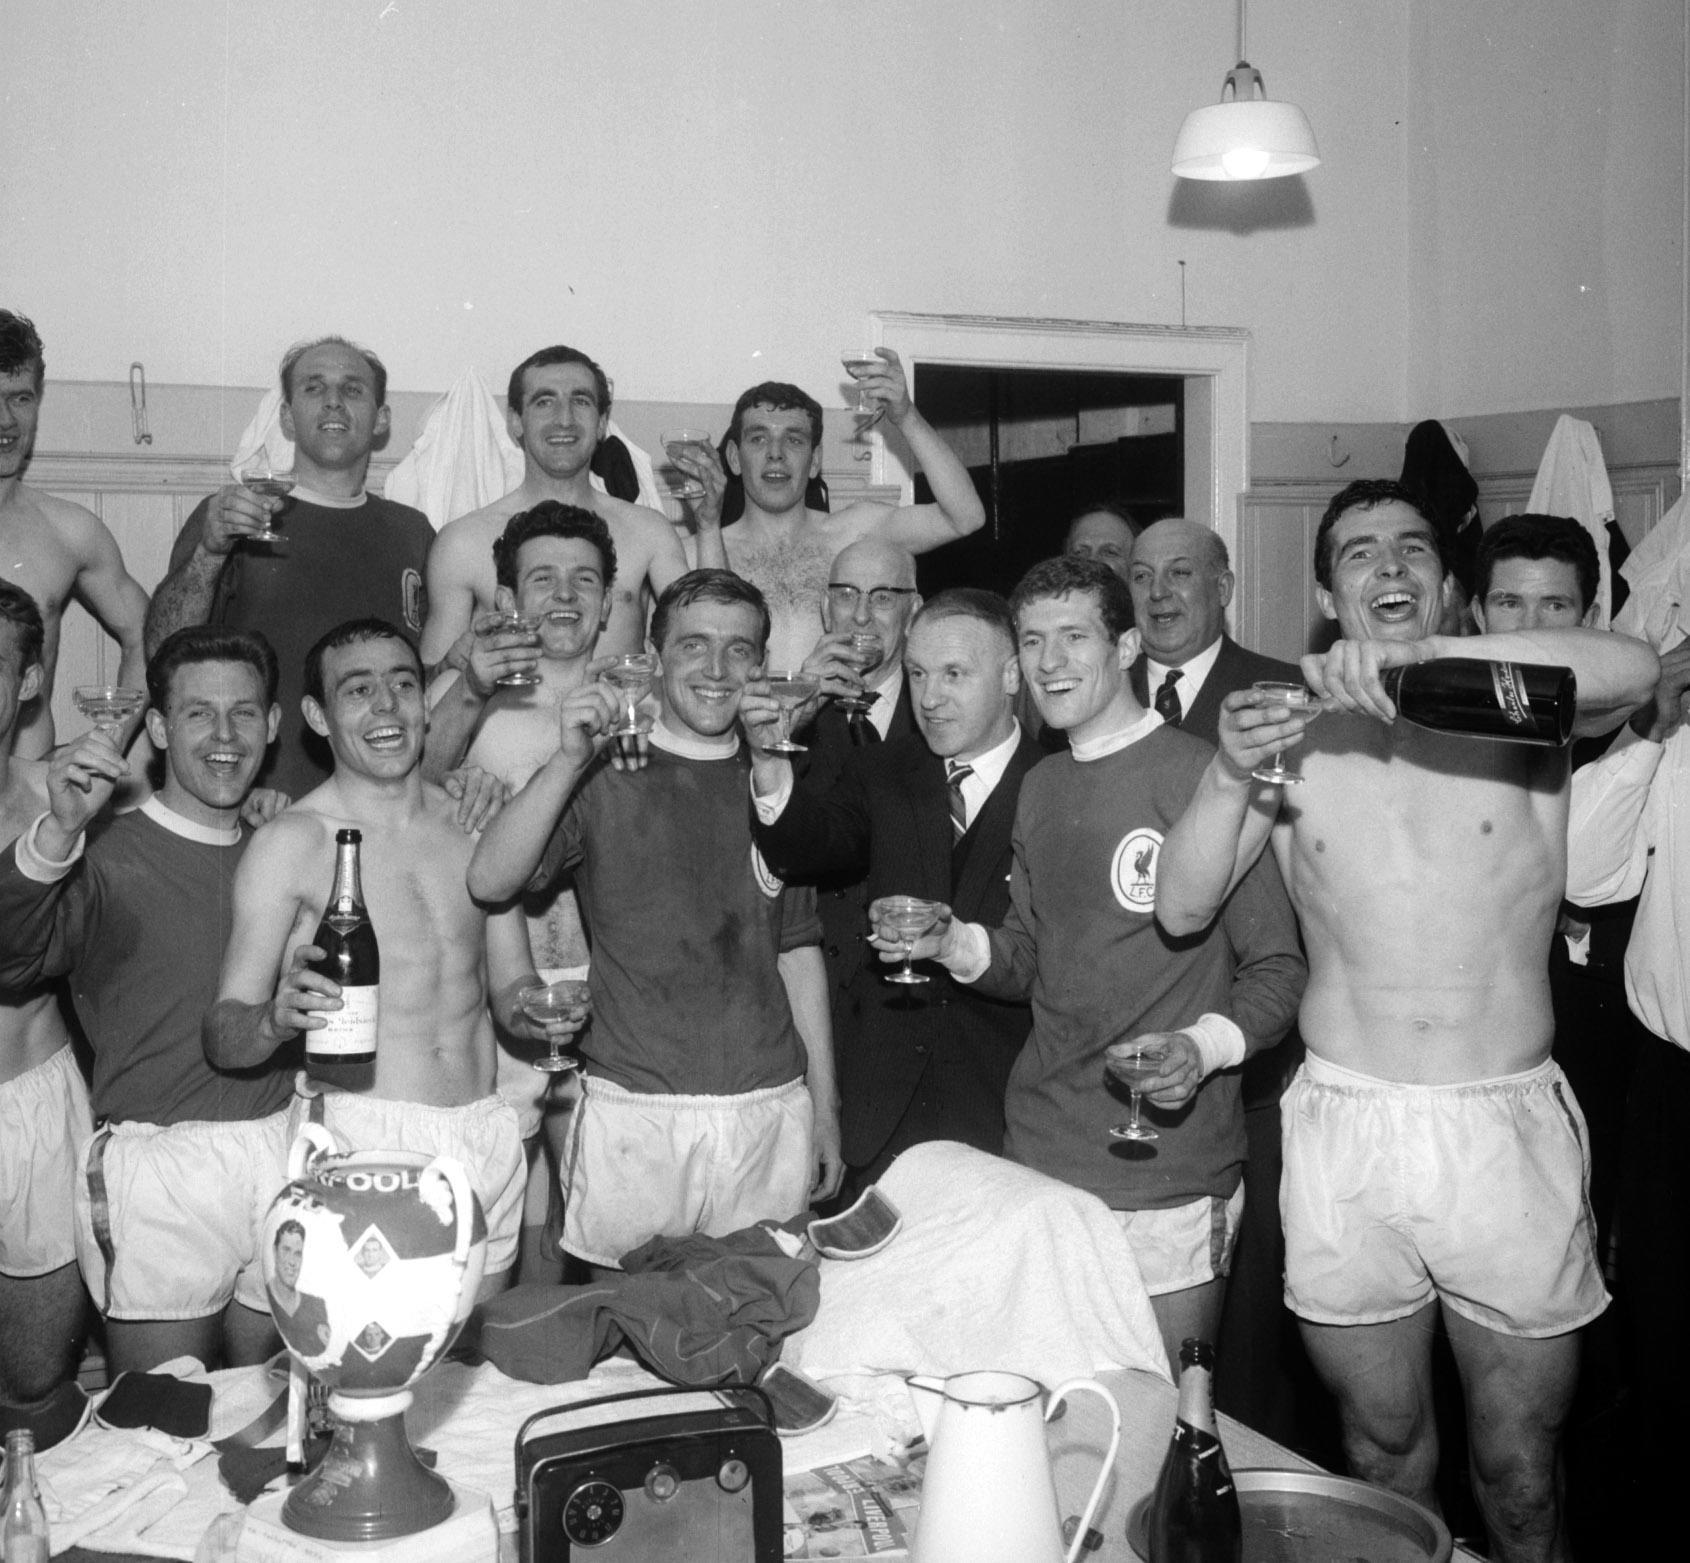 The Liverpool players and manager Bill Shankly (centre with suit) celebrating with champagne in the dressing room at Anfield, after the 5-0 victory over Arsenal which gave them the League Championship. 18/4/1964